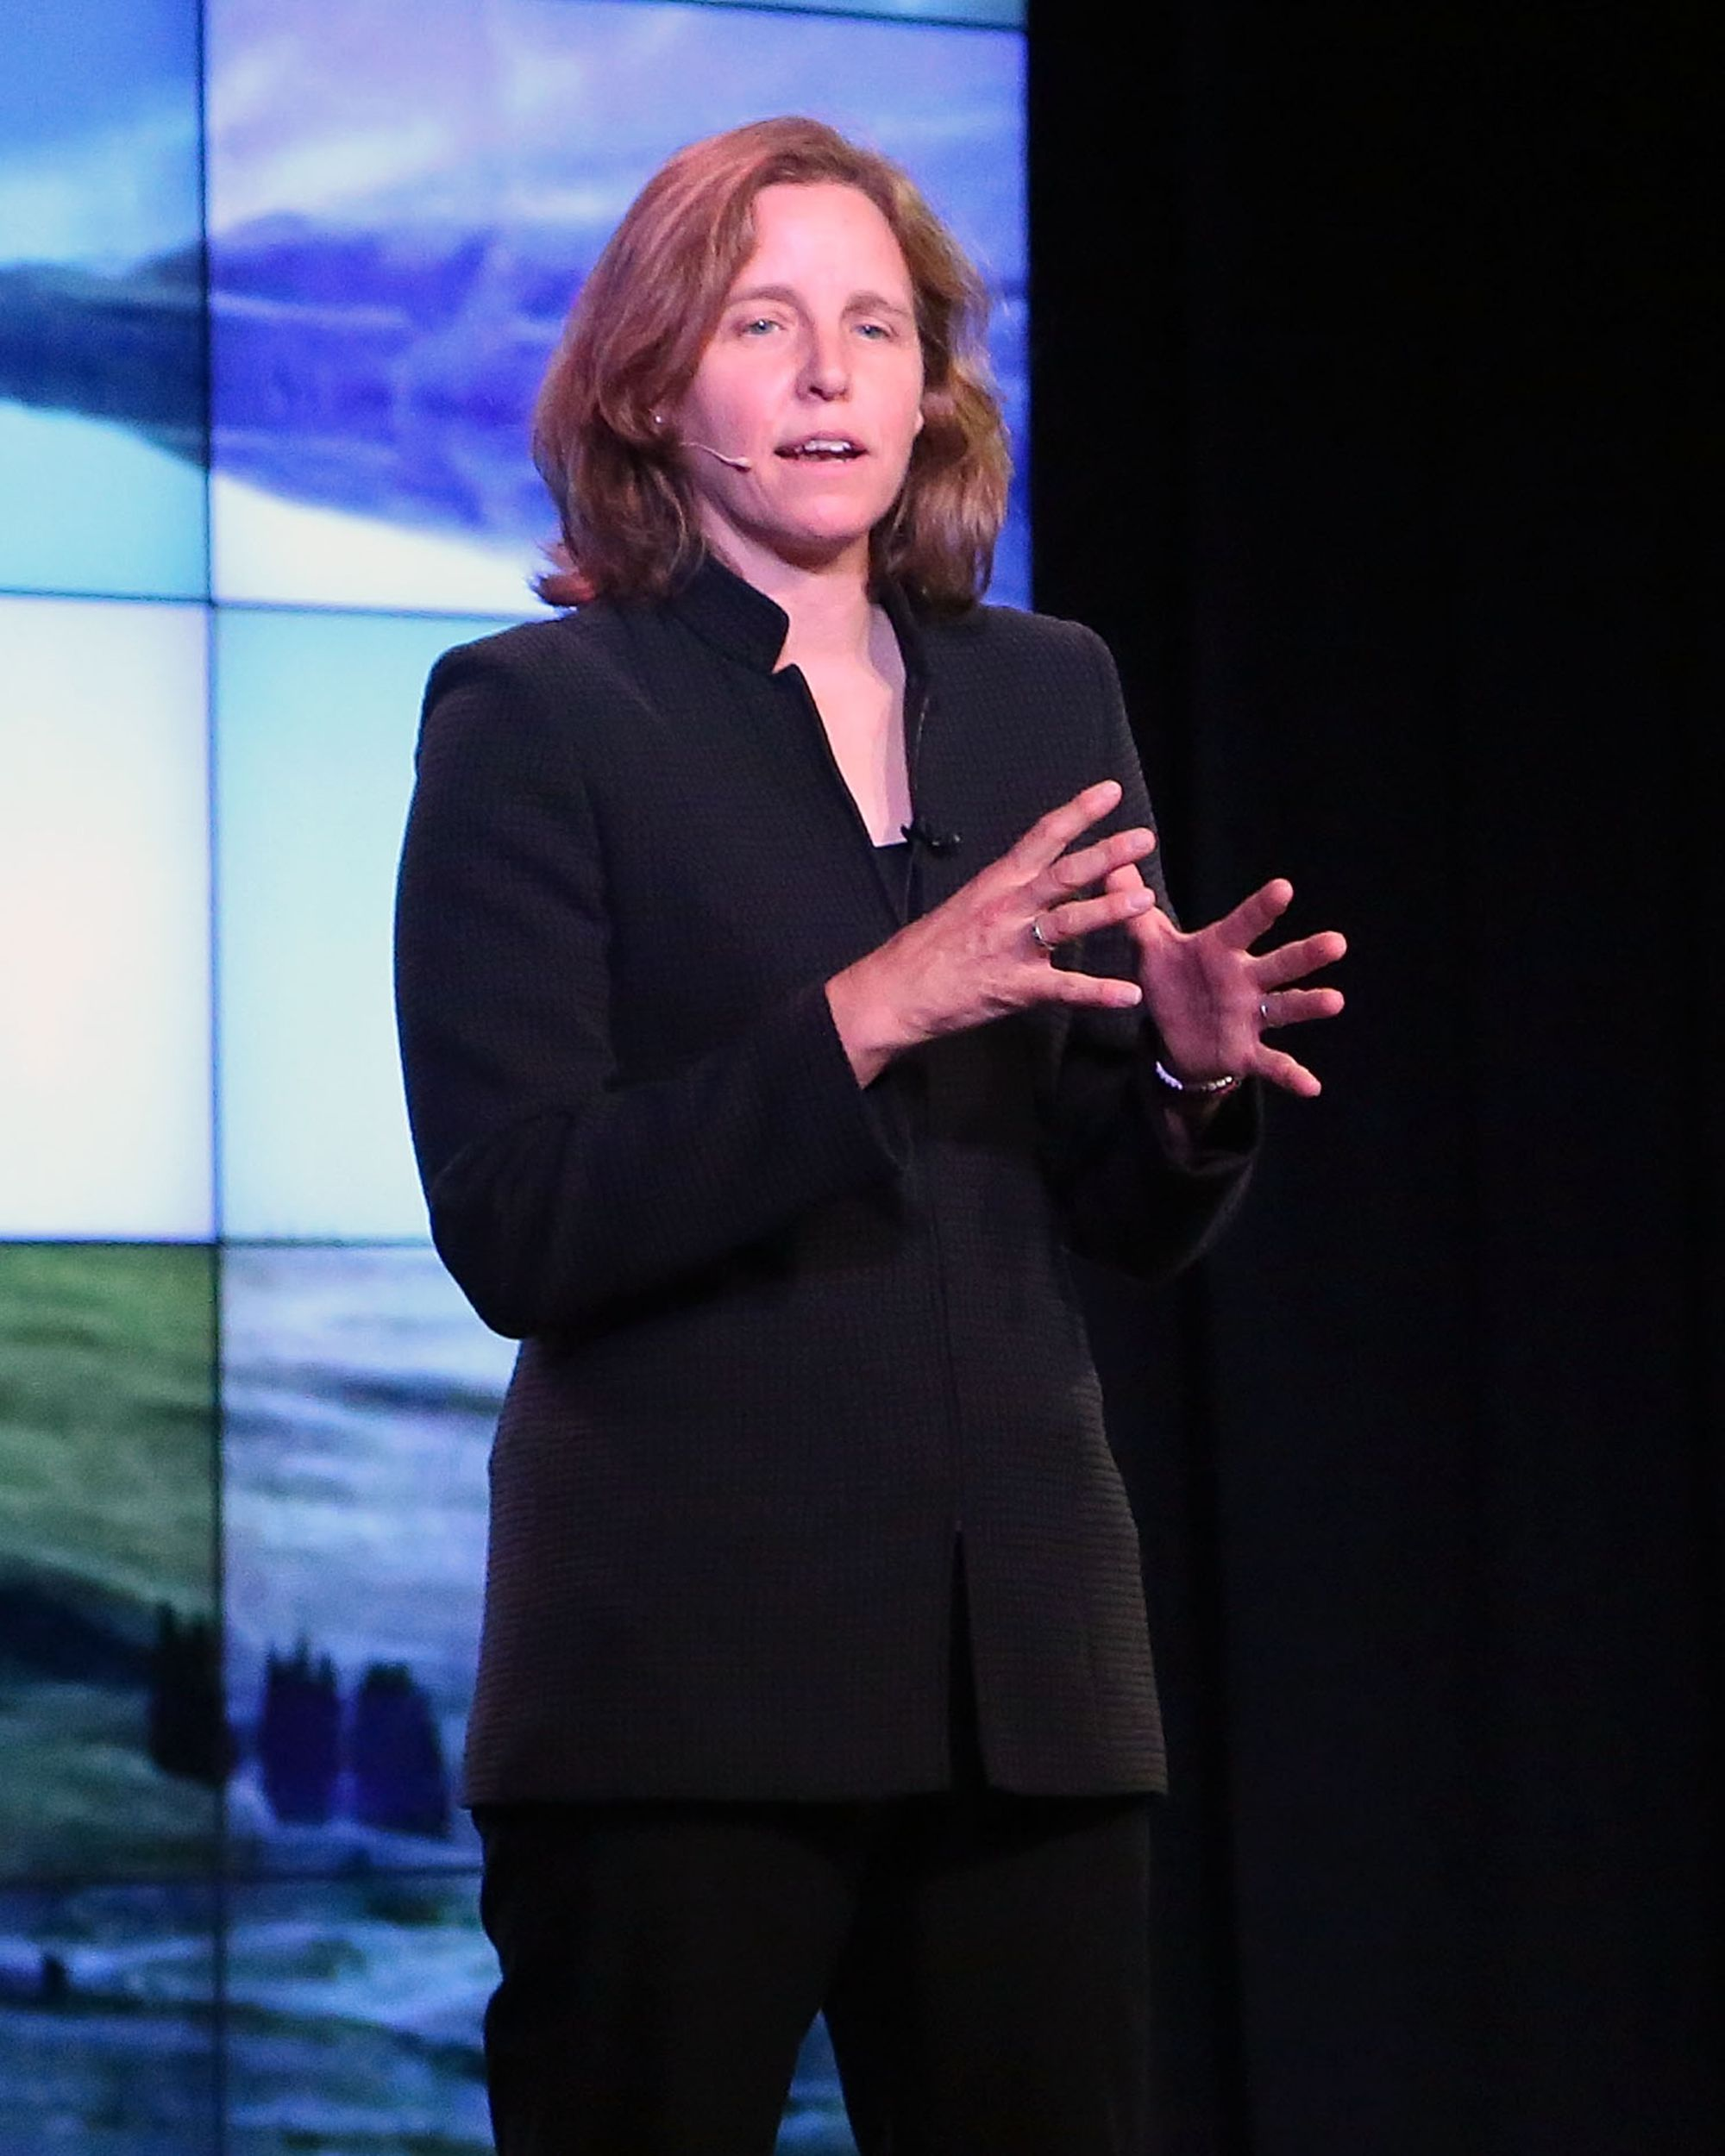 Smith is only the third person—and first woman—to hold the job of United States Chief Technology Officer. As CTO of the entire country, she's tasked with expanding broadband access to the public and several other tech-related federal initiatives, such as improving healthcare.gov and cybersecurity. She also advises President Obama on all tech matters, such as when she recently pushed him to support net neutrality. - Photo: Getty Images